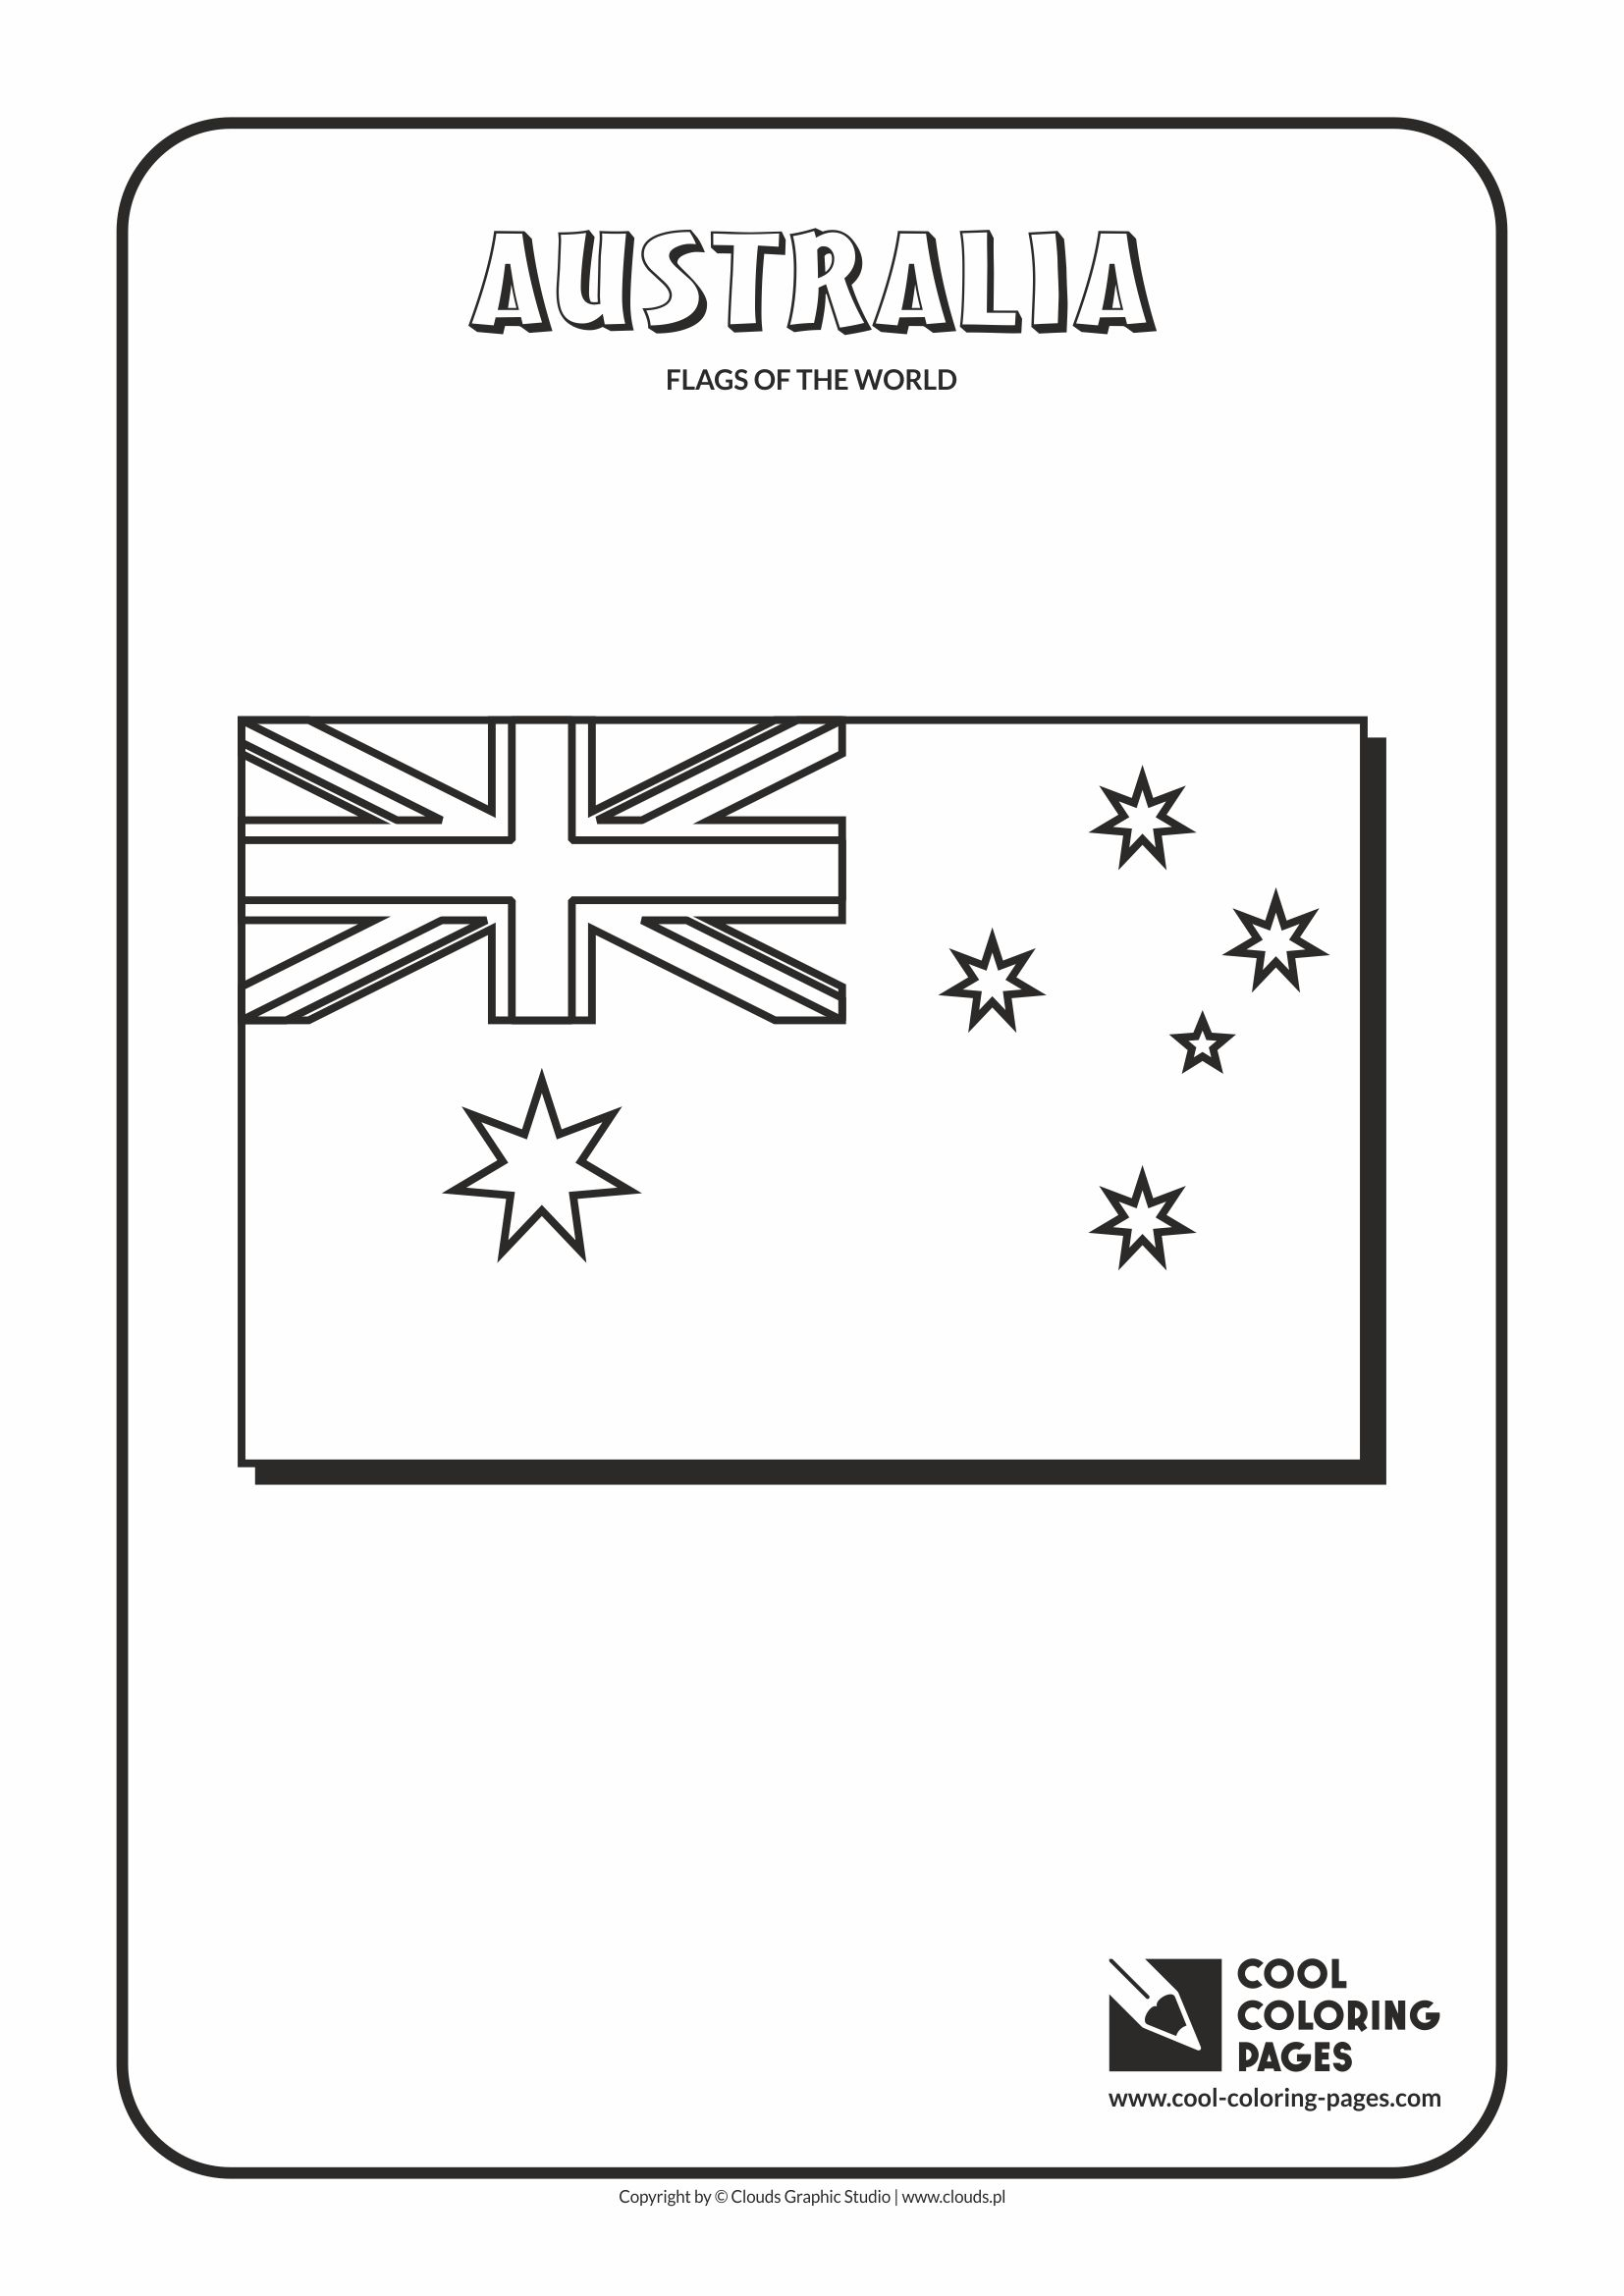 flags of the world coloring page of the australian flag